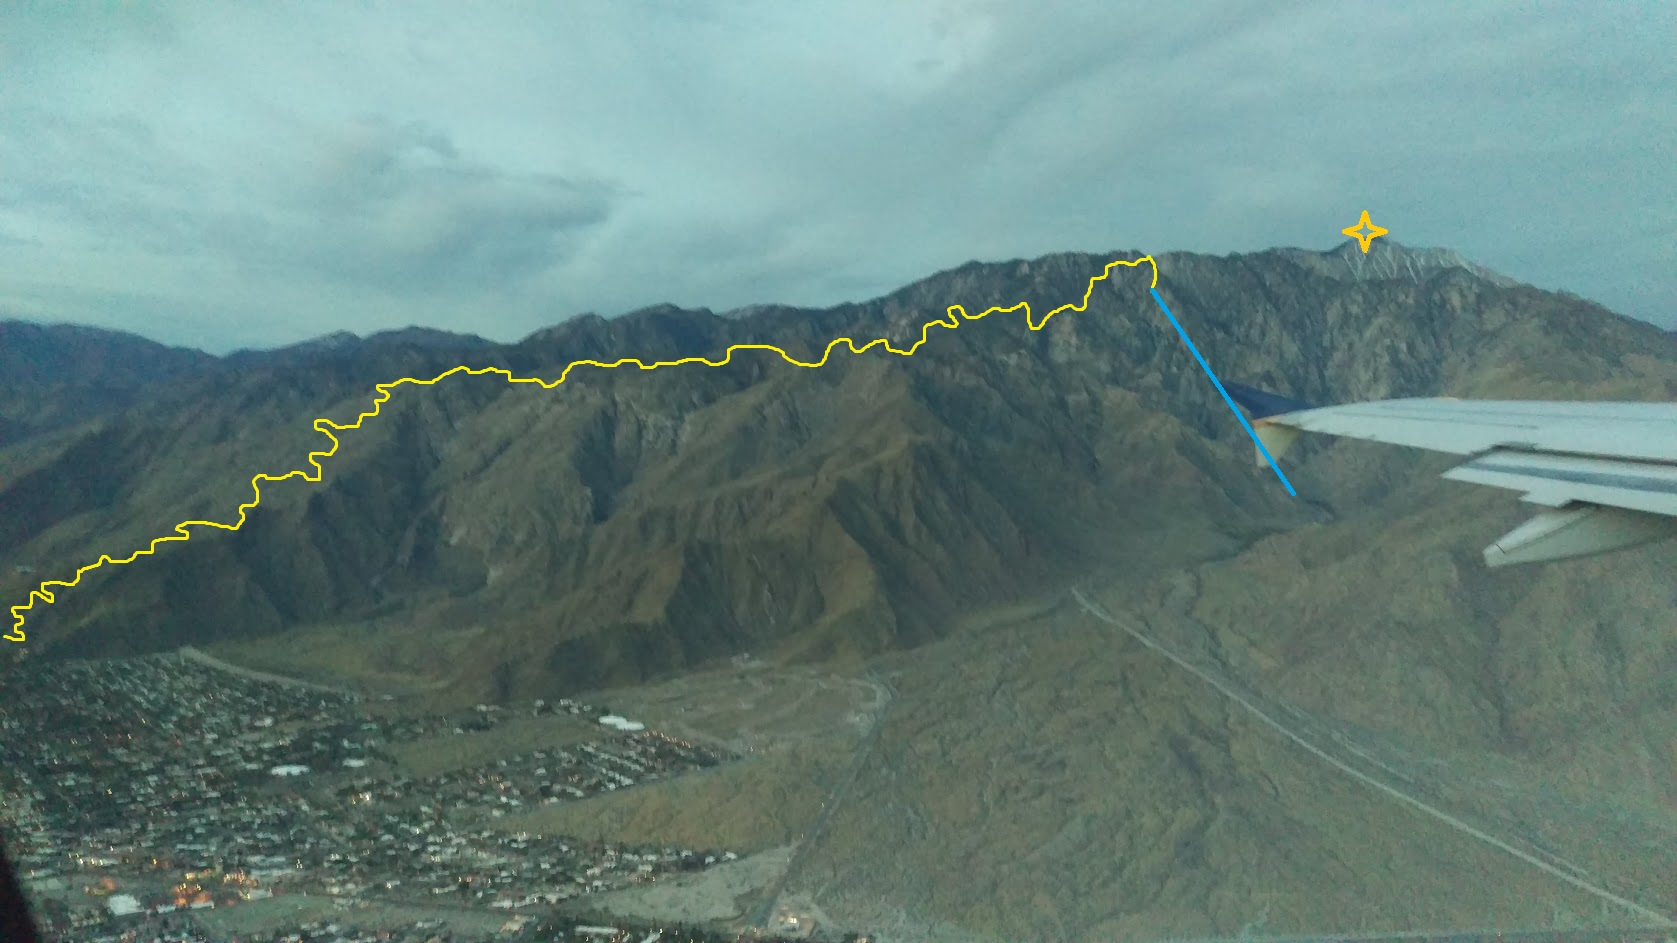 Cactus to Clouds Trail, Palm Springs, CA.  Forced to stop a couple thousand feet short but we'll get it sometime soon.  (Aerial Tram back down in blue)  Pick any spot on the line and pure bliss!